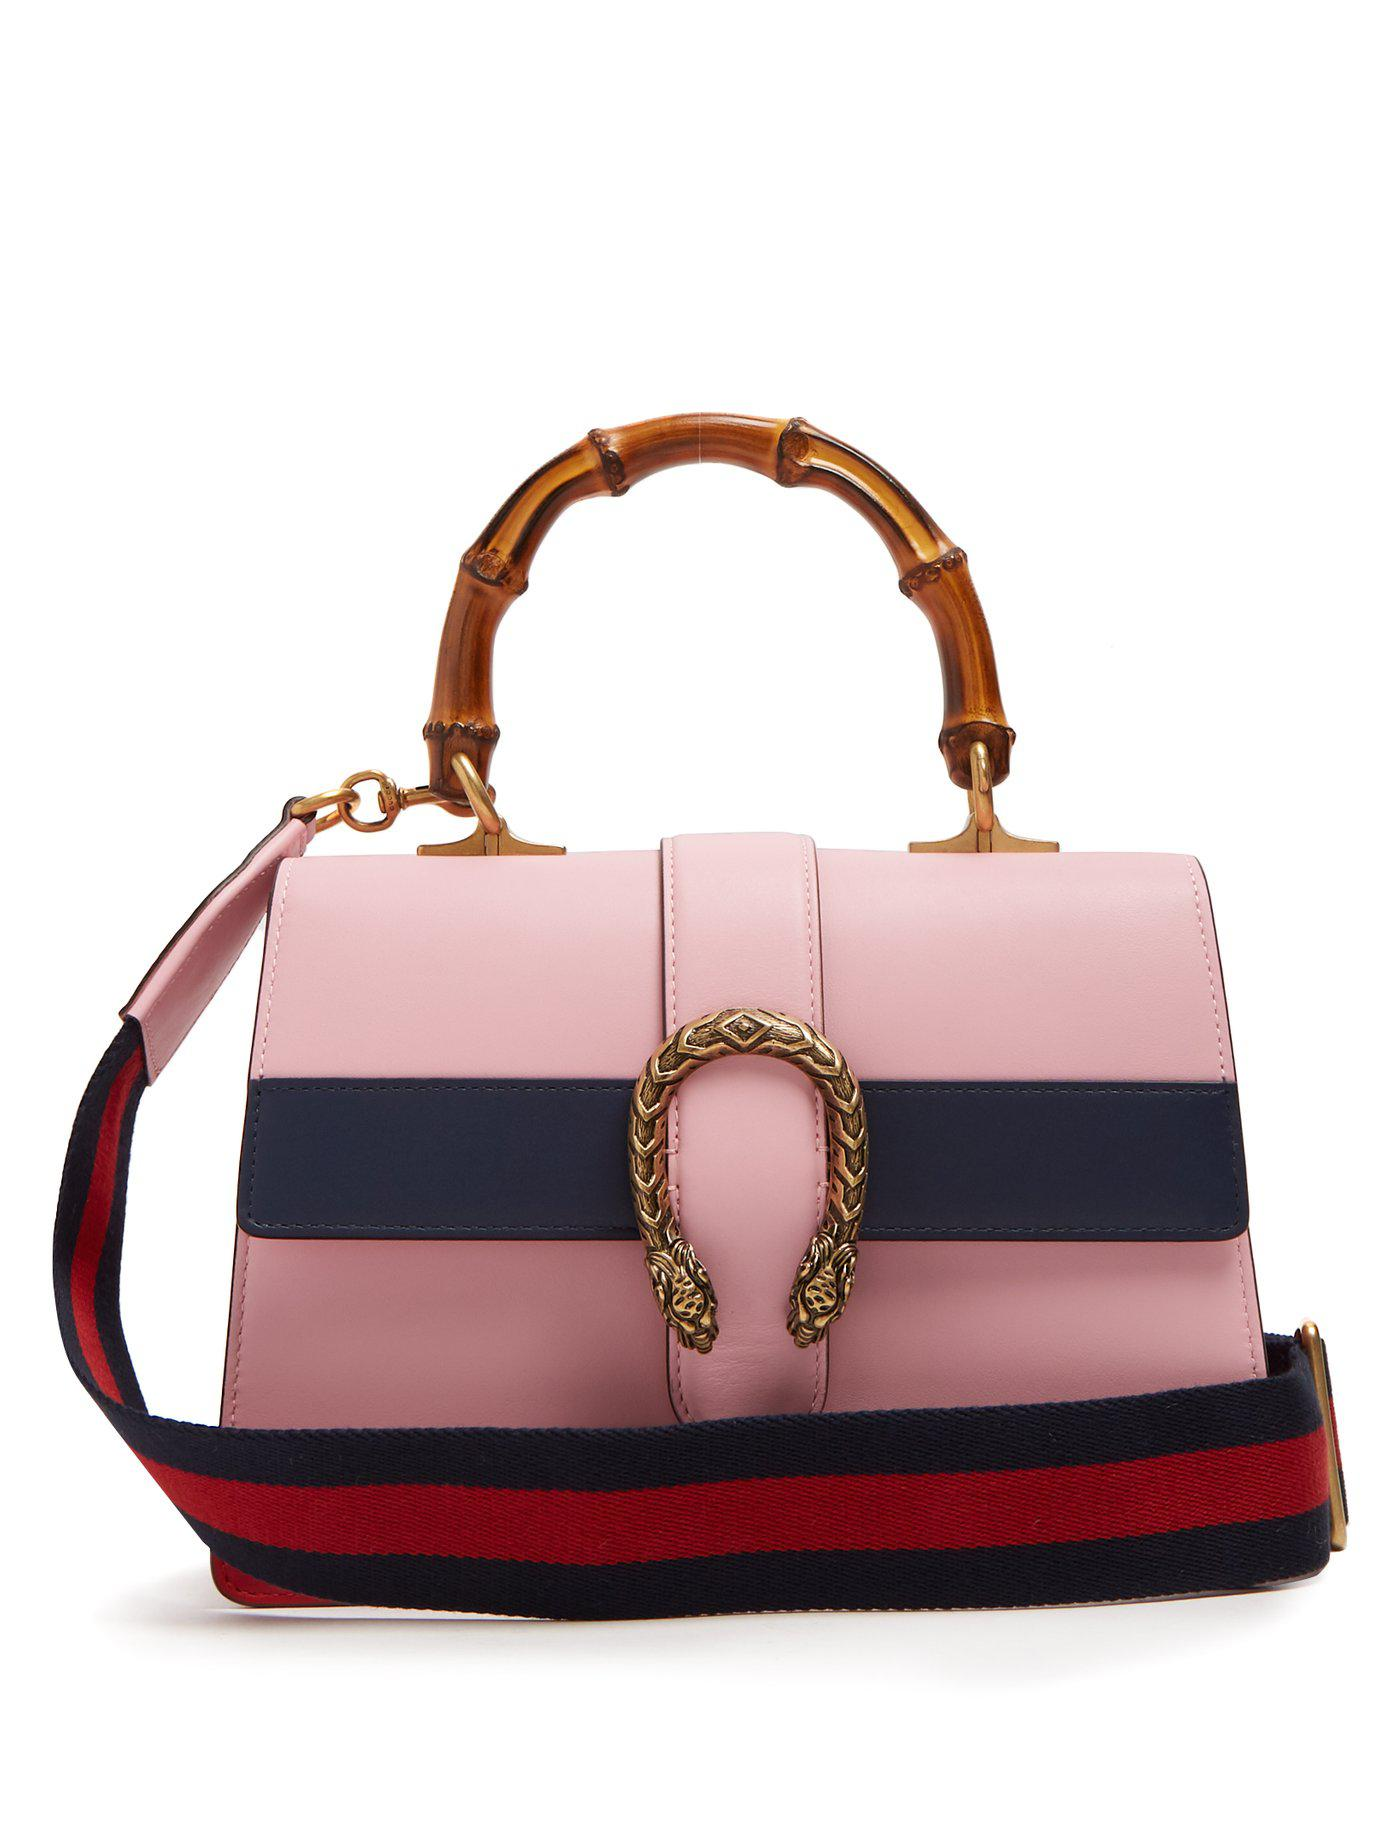 c59aafd26 Gucci Dionysus Medium Bamboo Handle Leather Bag in Pink - Lyst